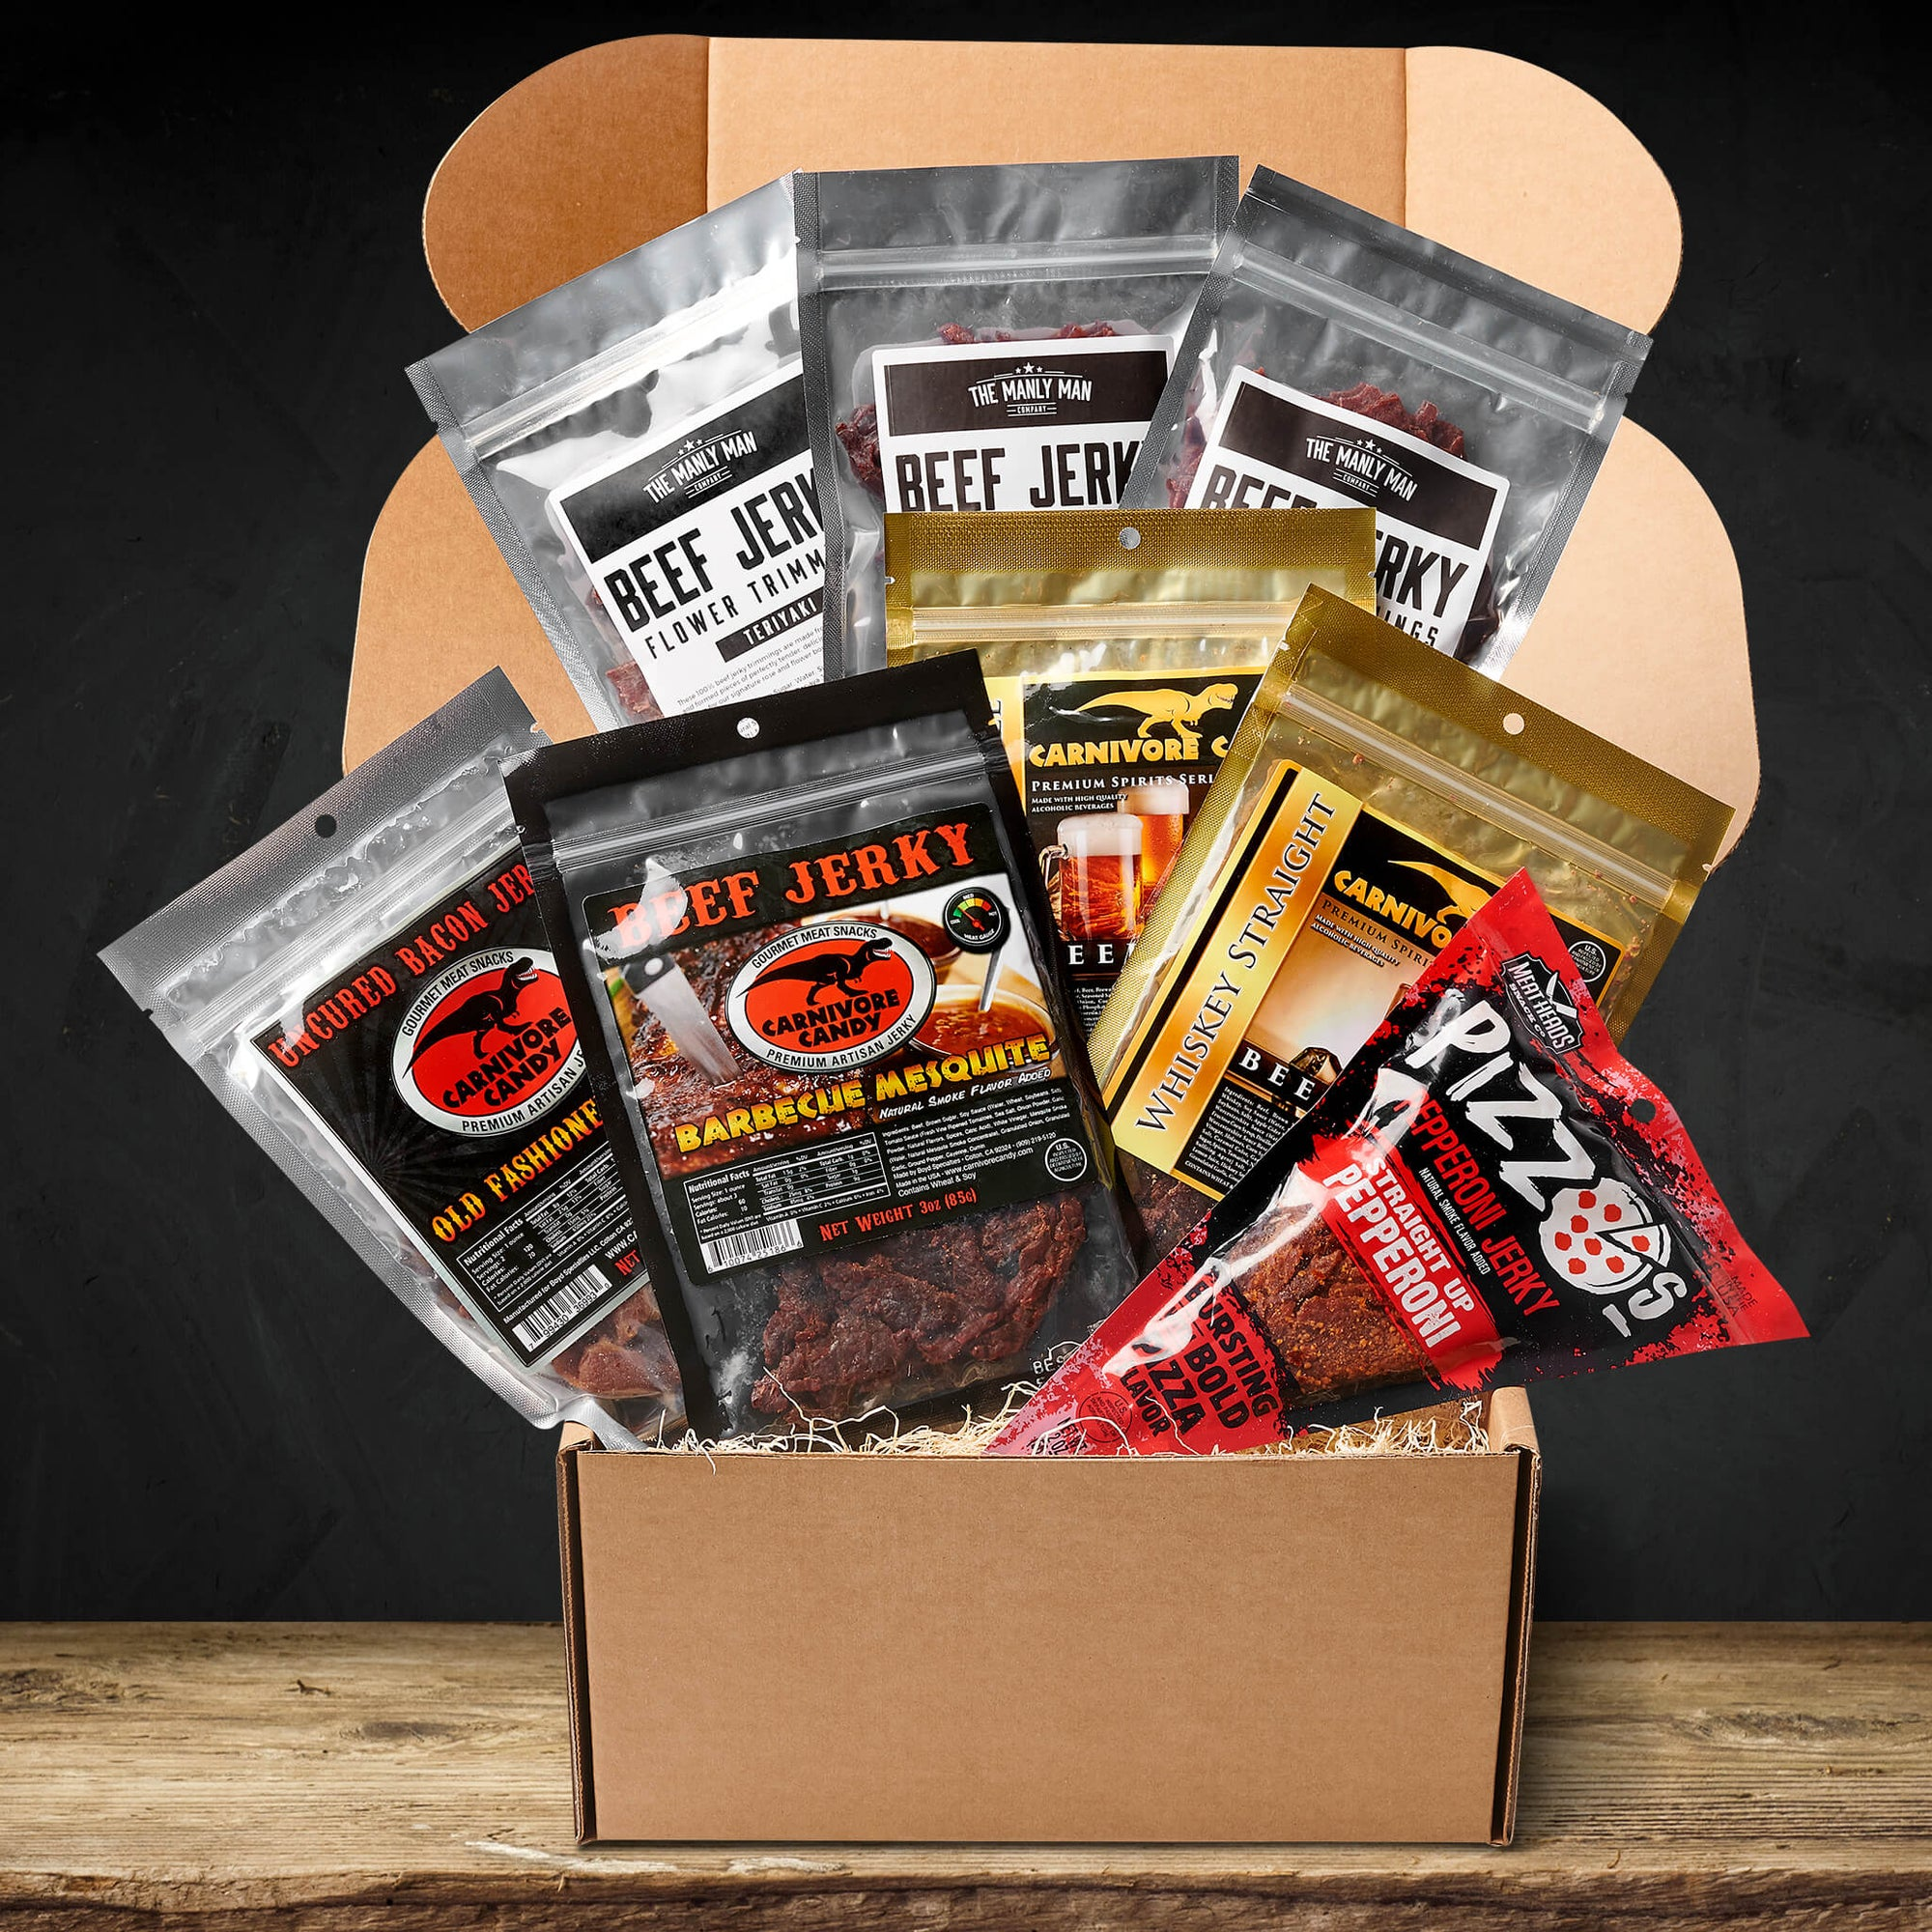 The best jerky gift crate sitting on wood paneled floor